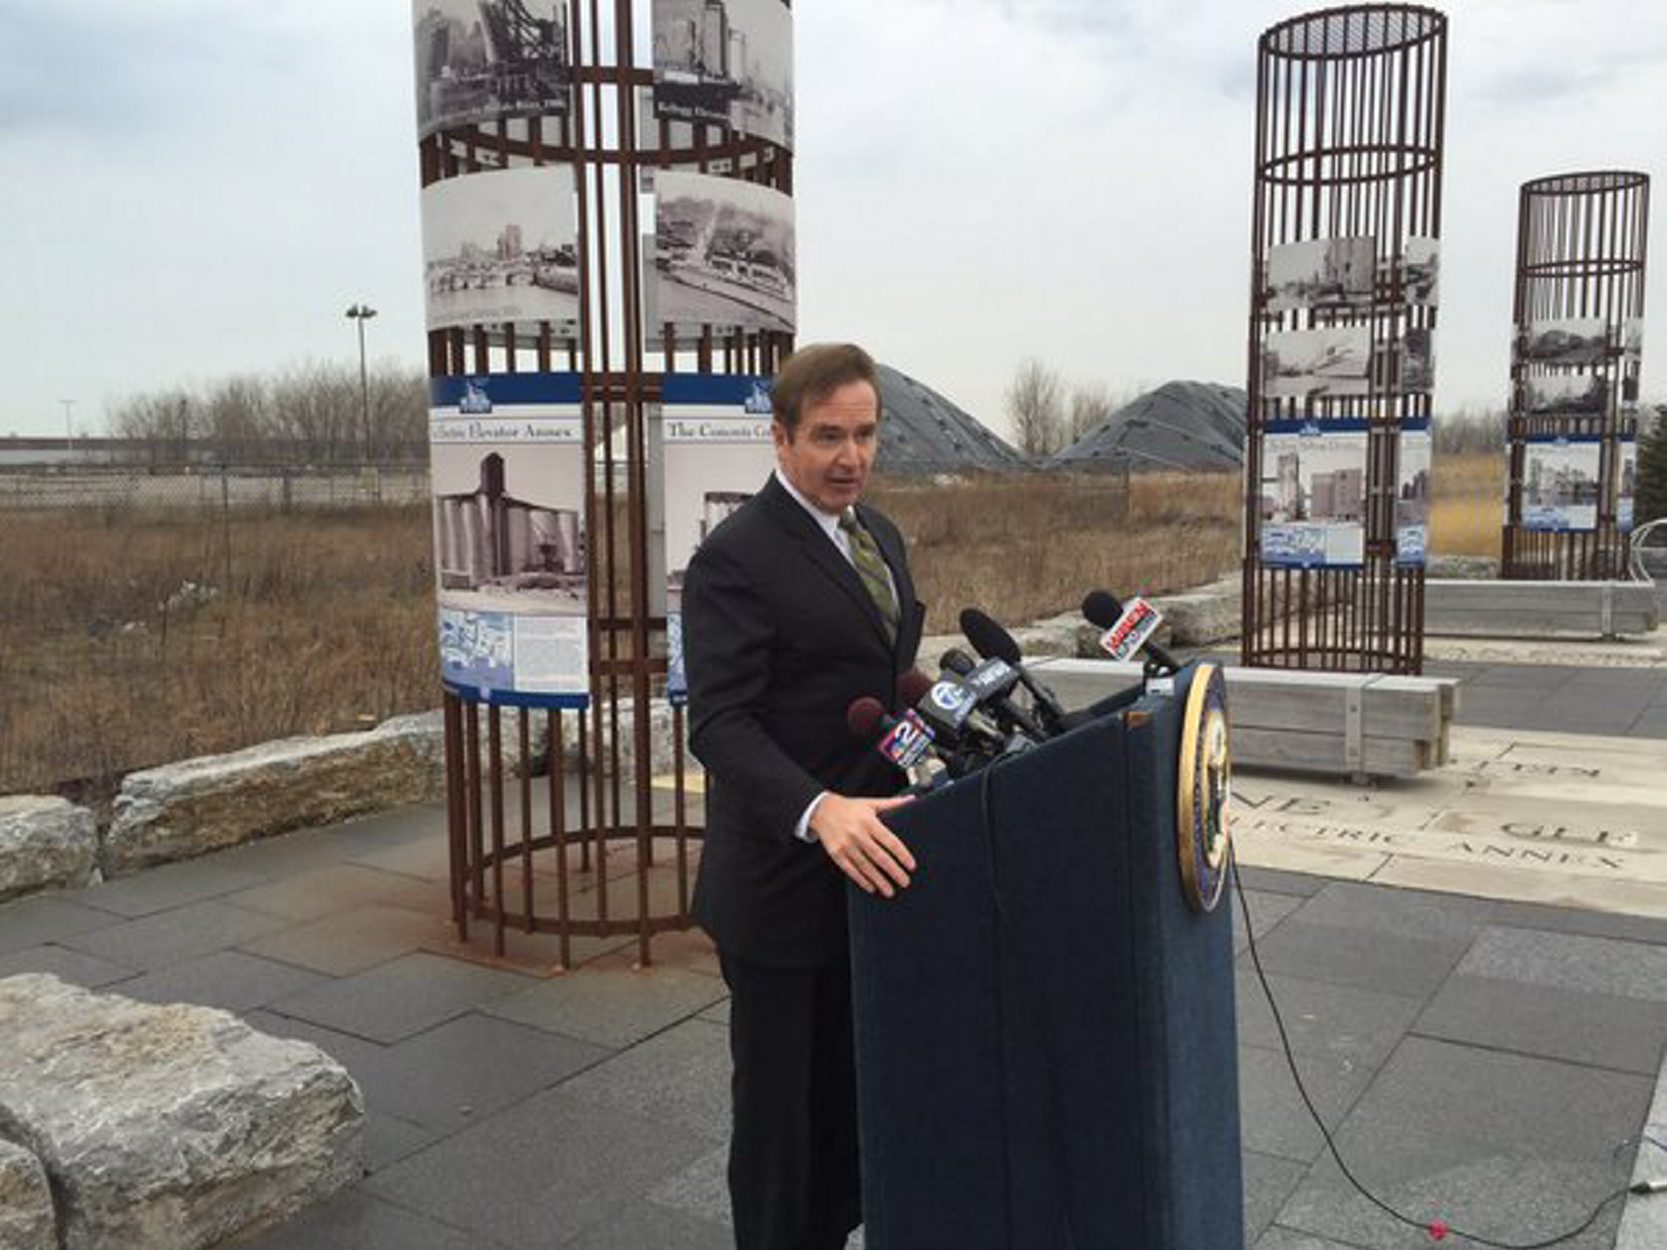 Rep. Brian Higgins speaks on the Outer Harbor. (News file photo)